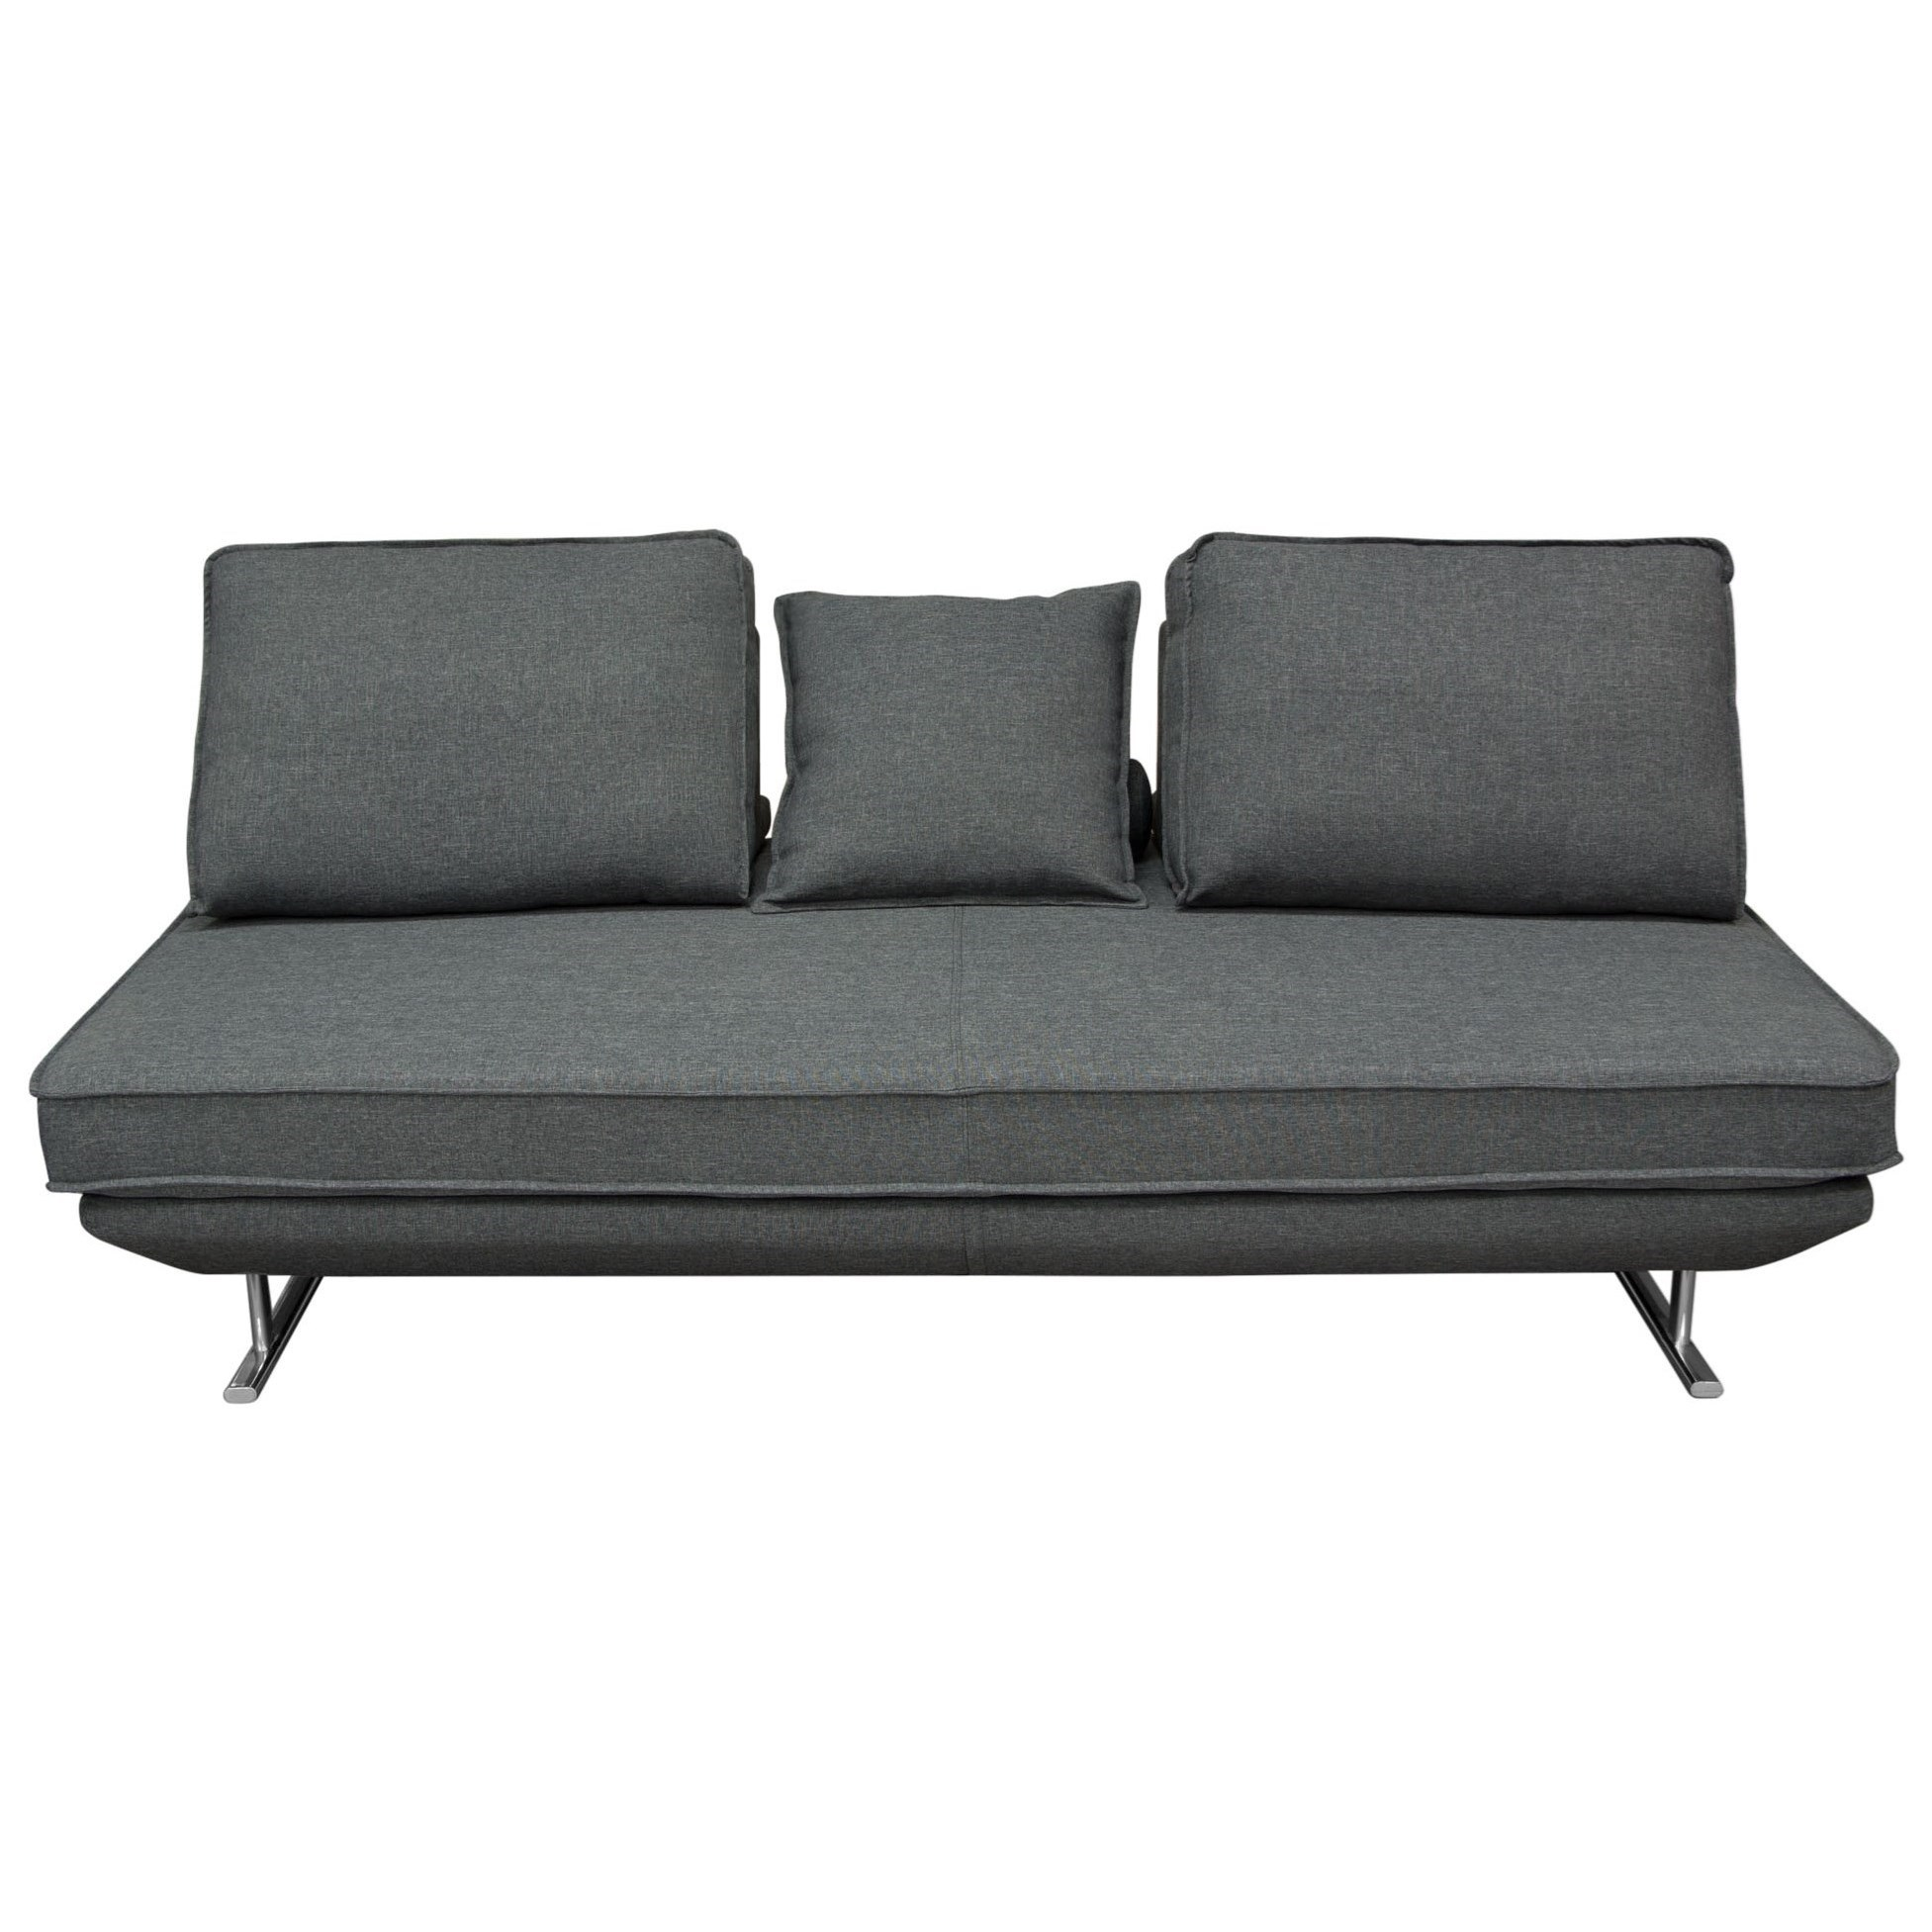 Dolce Lounger by Diamond Sofa at HomeWorld Furniture